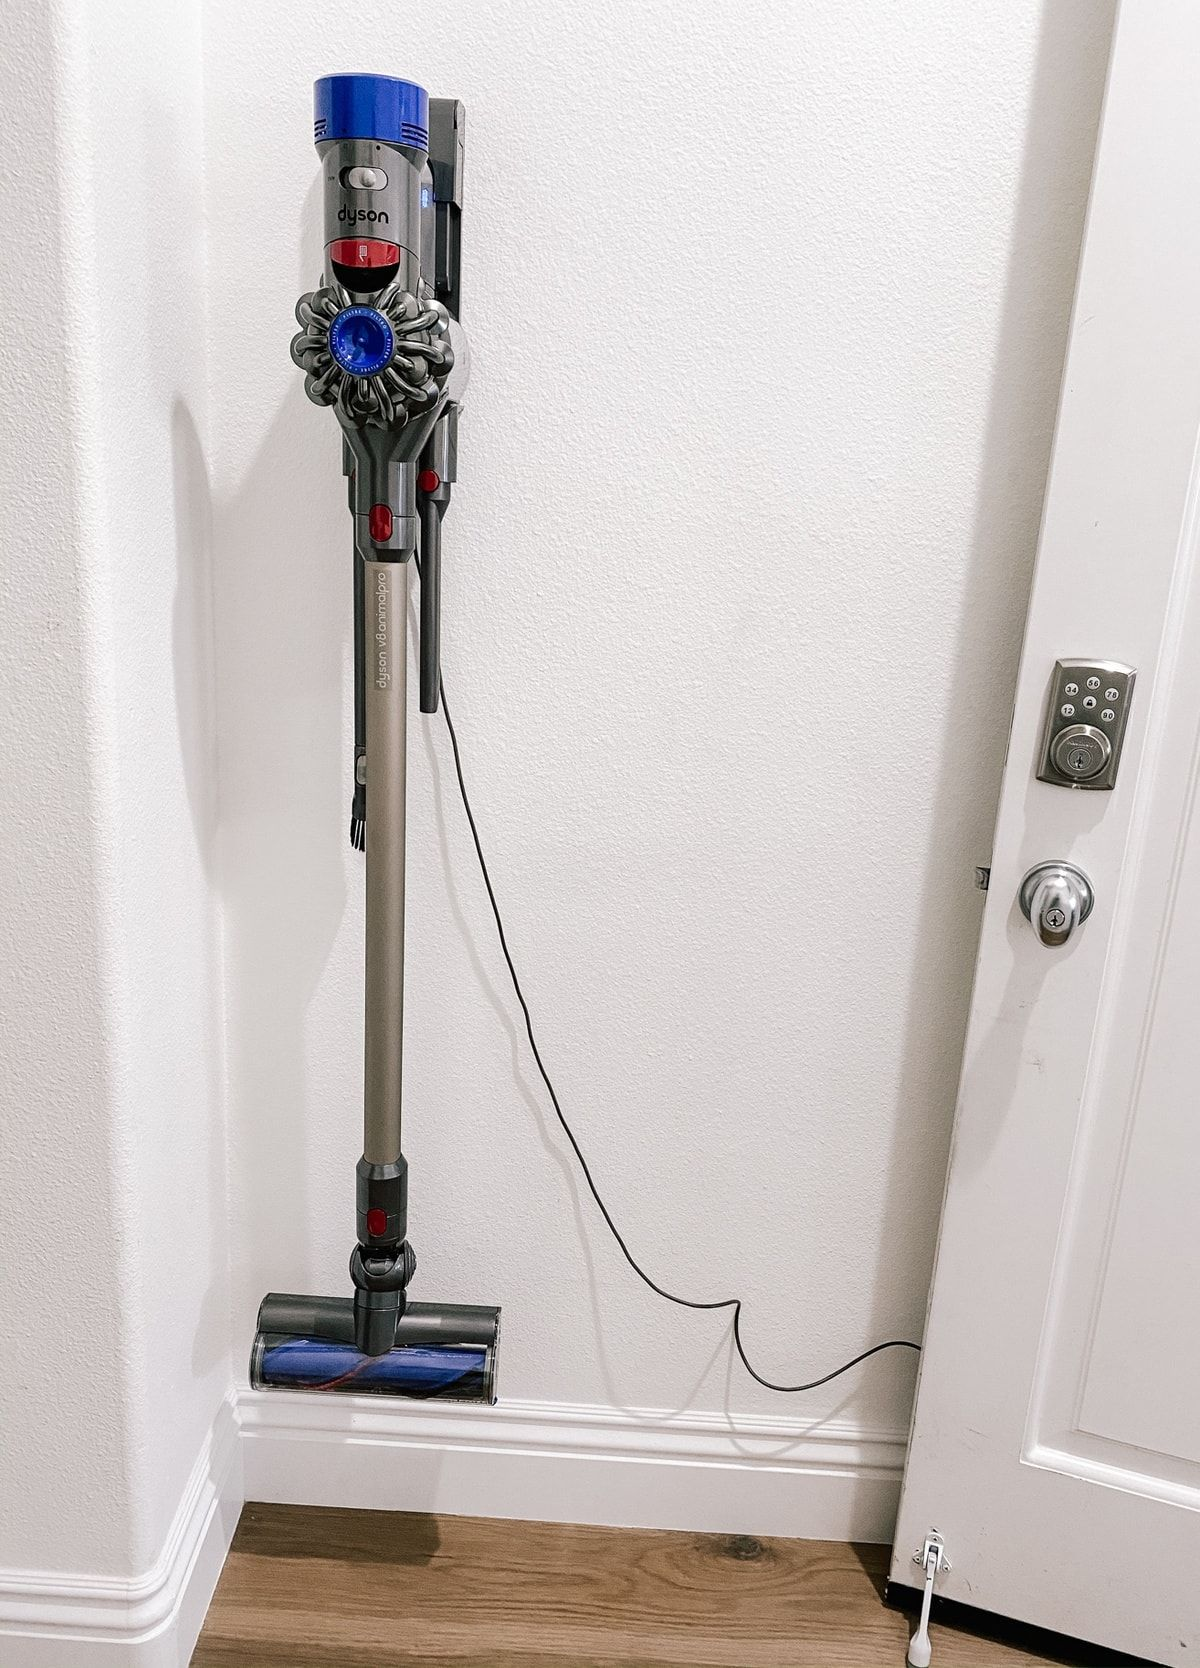 Hot deal on FOUR of my favorite Dyson products Mint